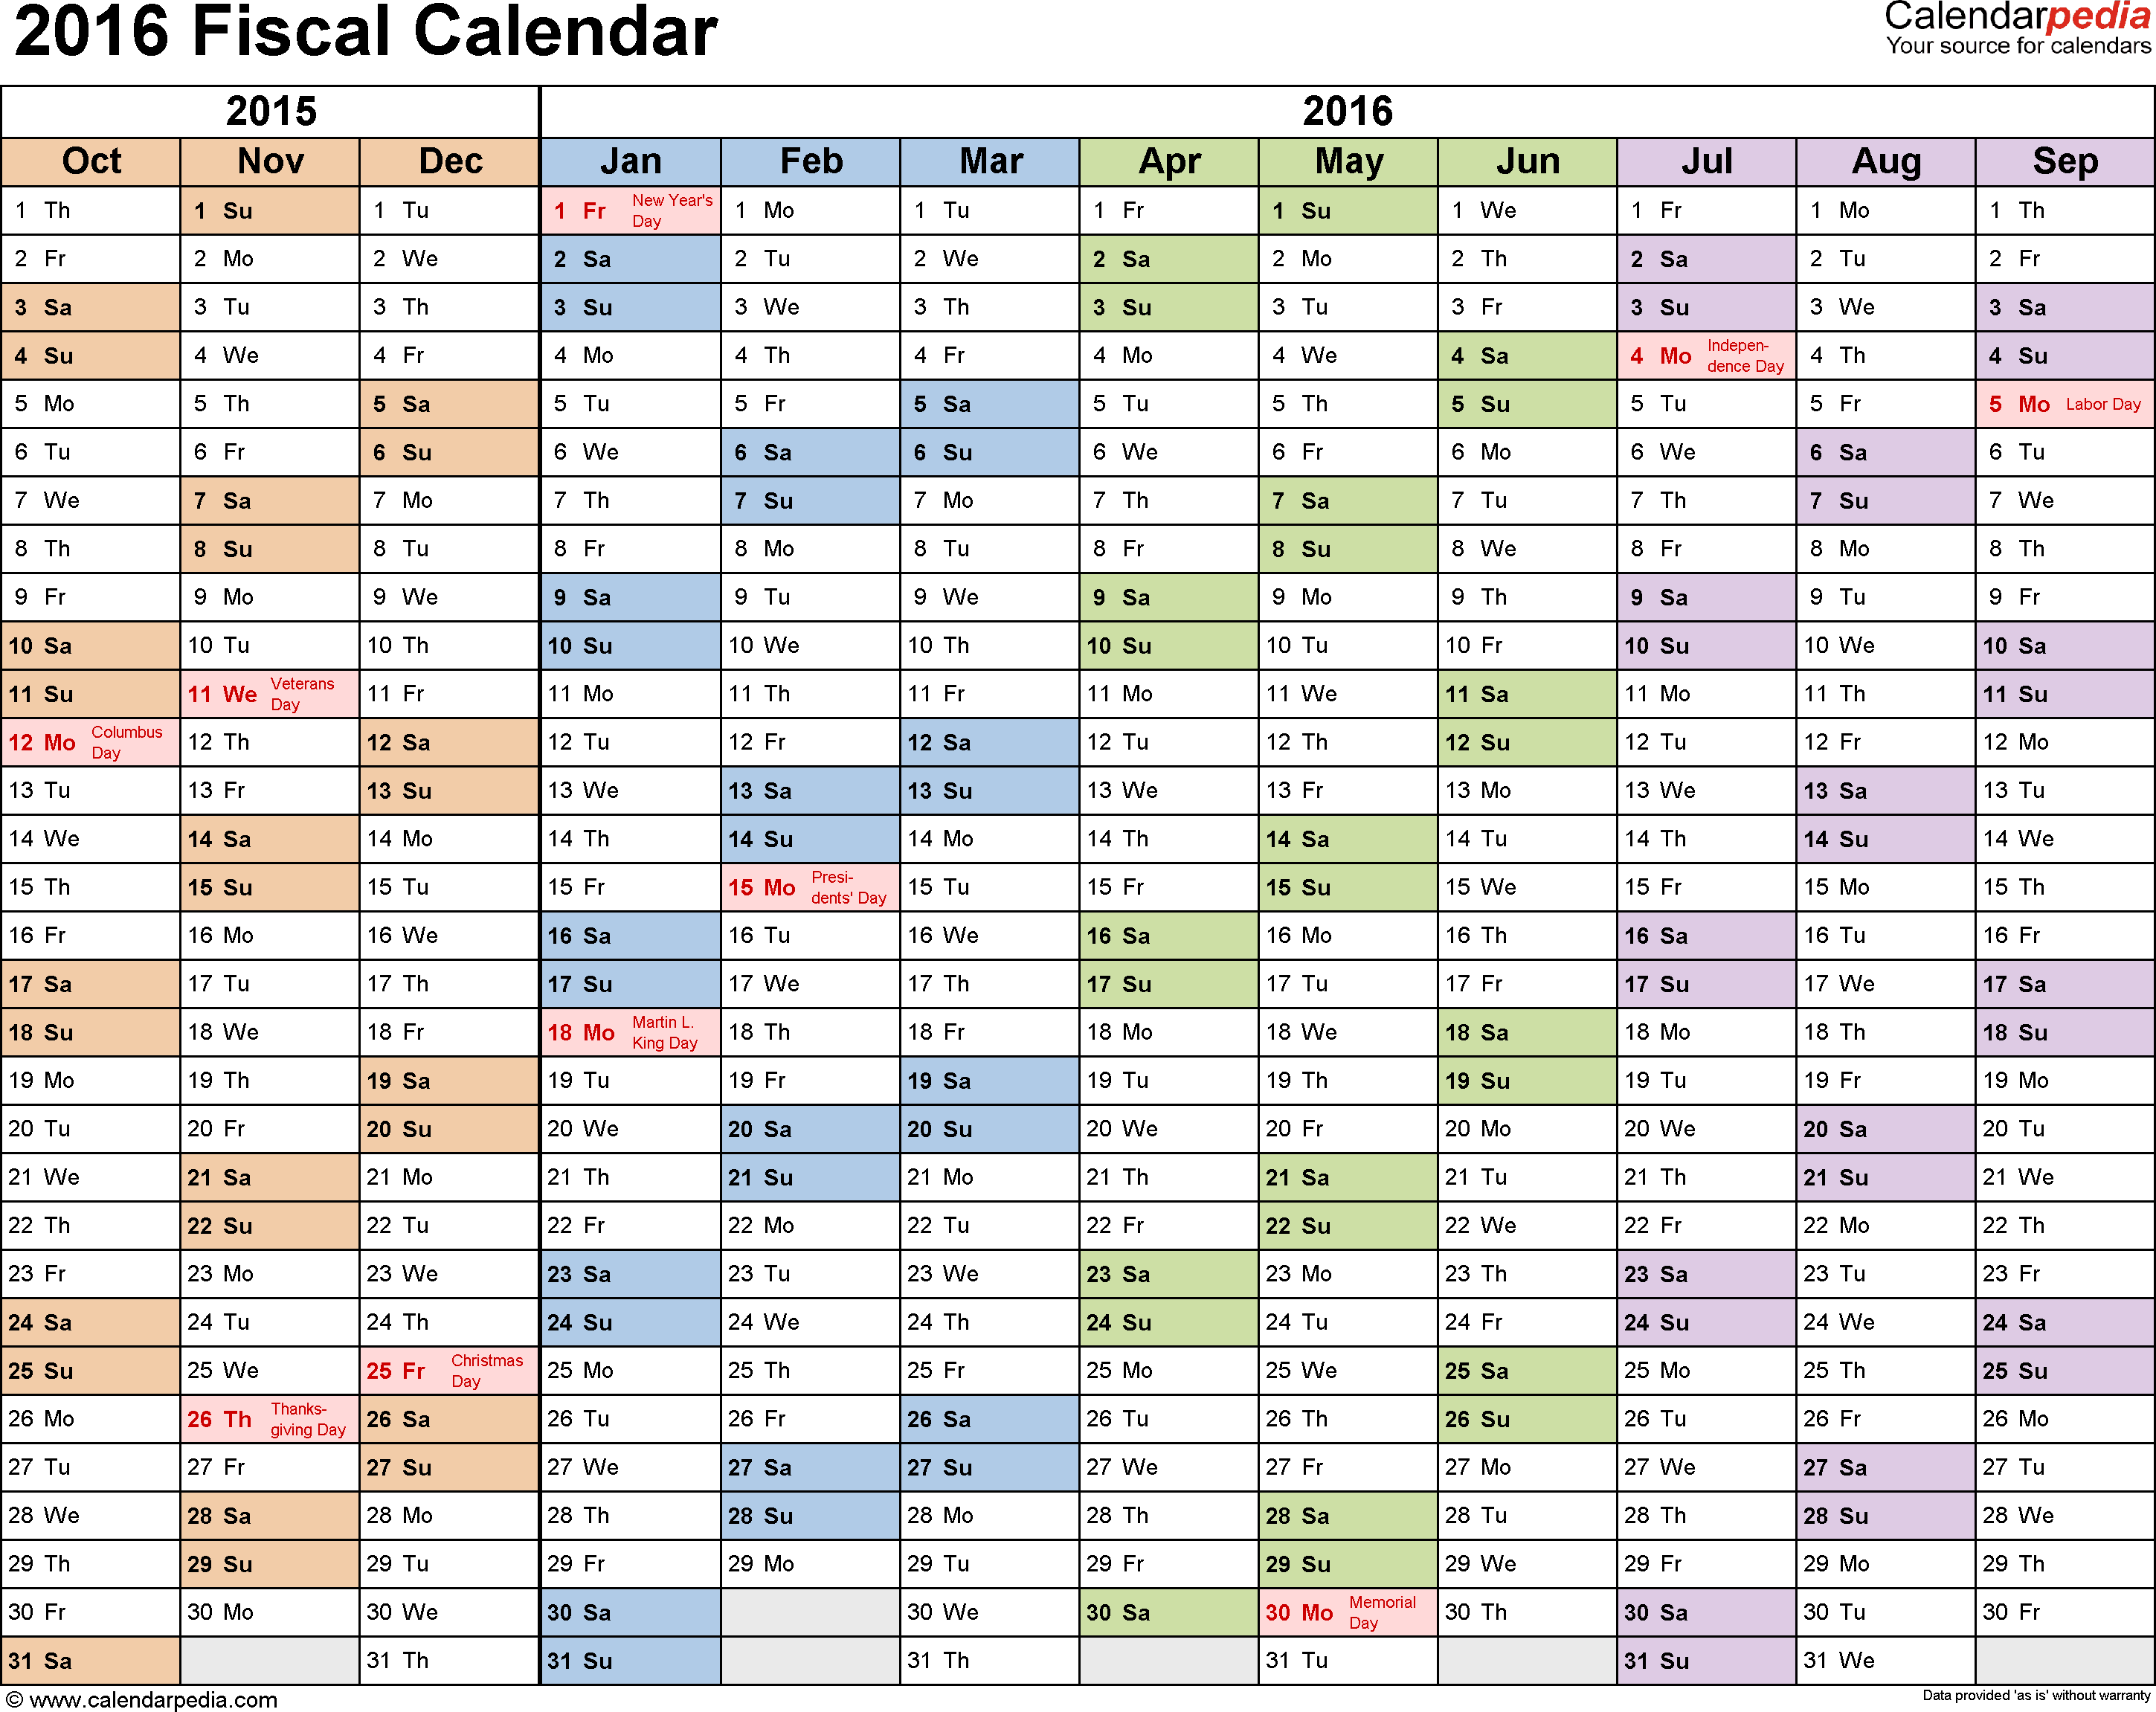 Template 1: Fiscal year calendar 2016 for Word, landscape orientation, months horizontally, 1 page